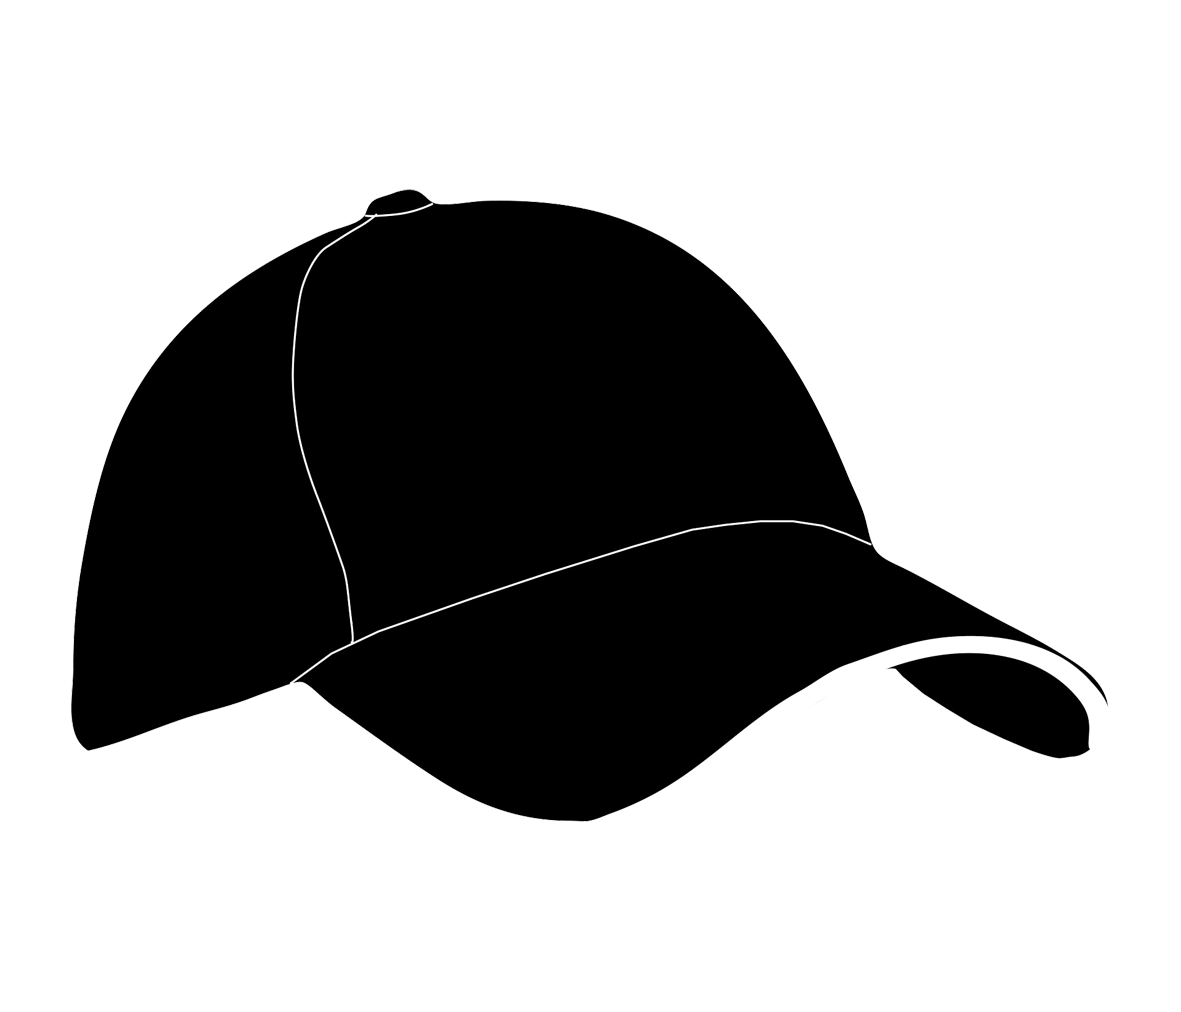 freeuse download Cap clipart sketches. Baseball hat .